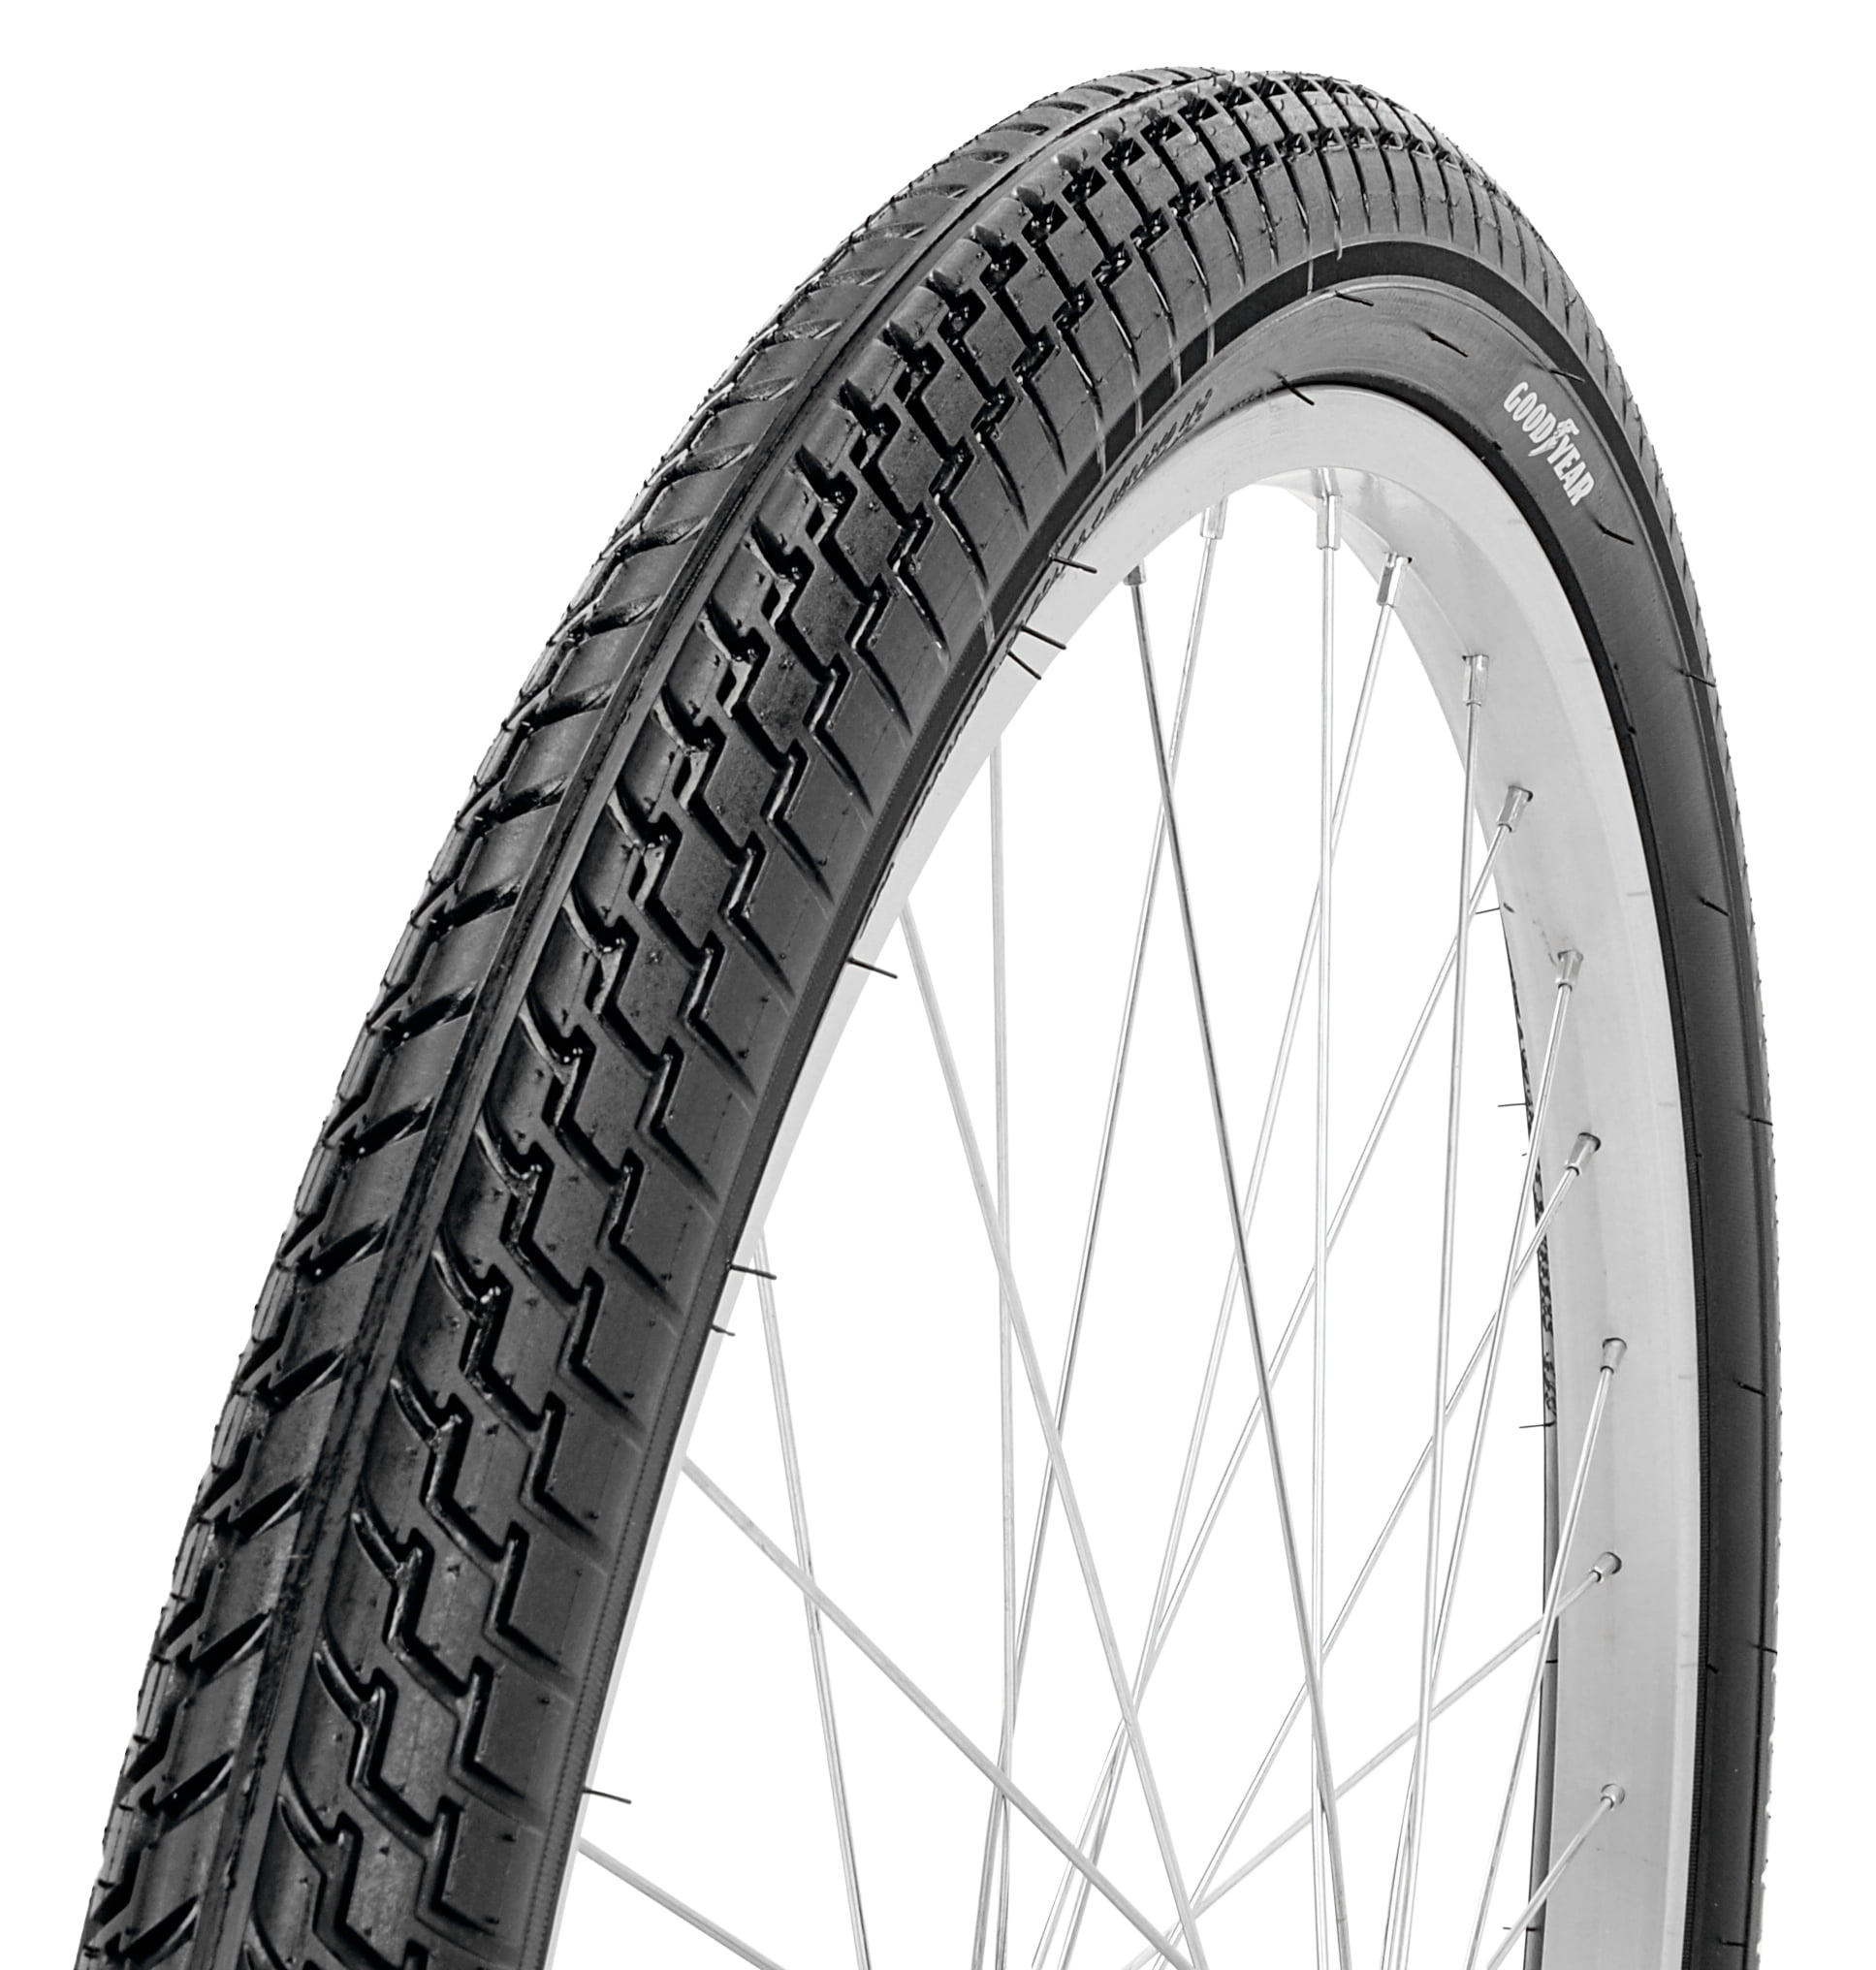 Goodyear Bike Tire Folding Bead 26in Bicycle Tire QTY 2 SET of TWO FREE SHIPPING